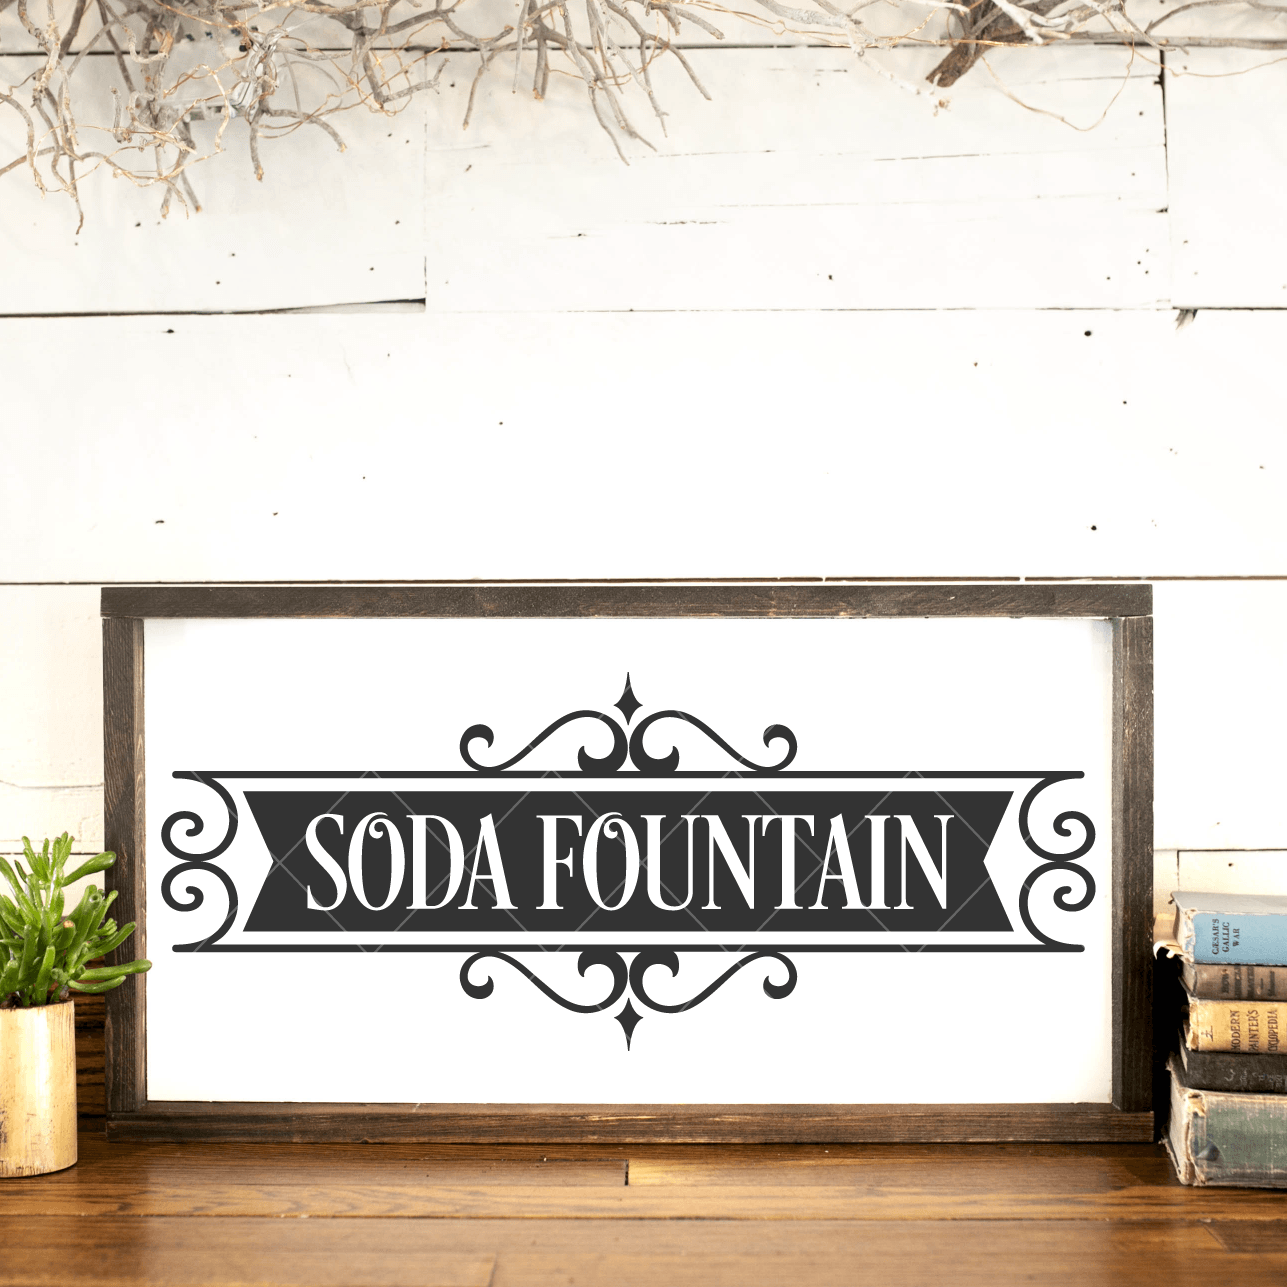 Vintage Soda Fountain SVG Cut File for Cricut/Silhouette